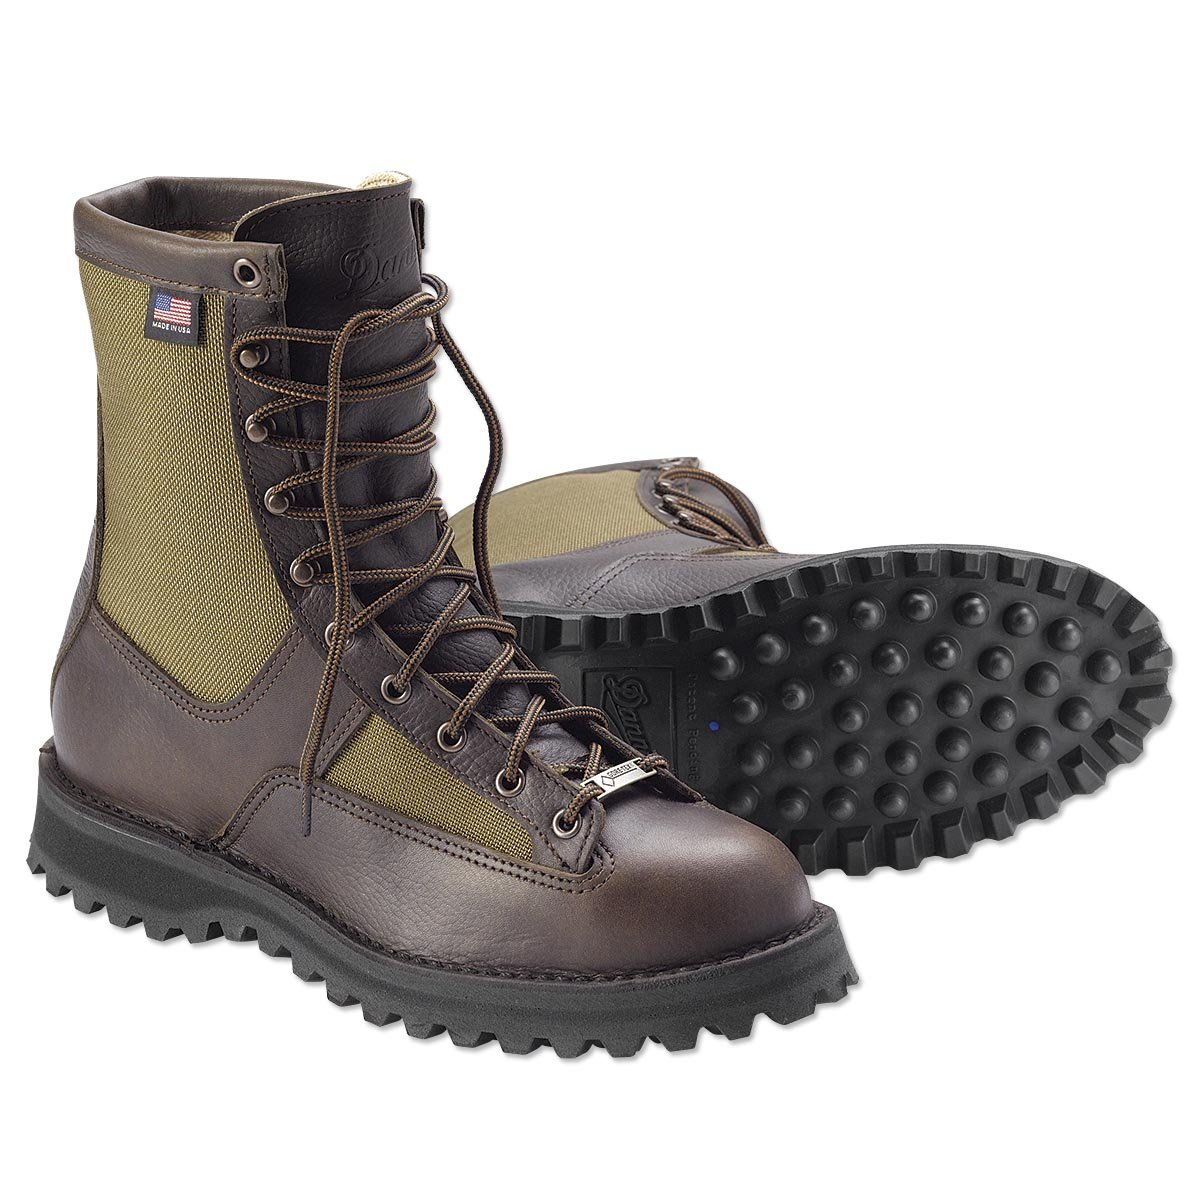 Danner grouse Boot 8'' height Brown Hunting Boots   Gore-TEX (GTX) Waterproof Hiking Leather Boots   Modern Battlefield Combat Boot (7 D)